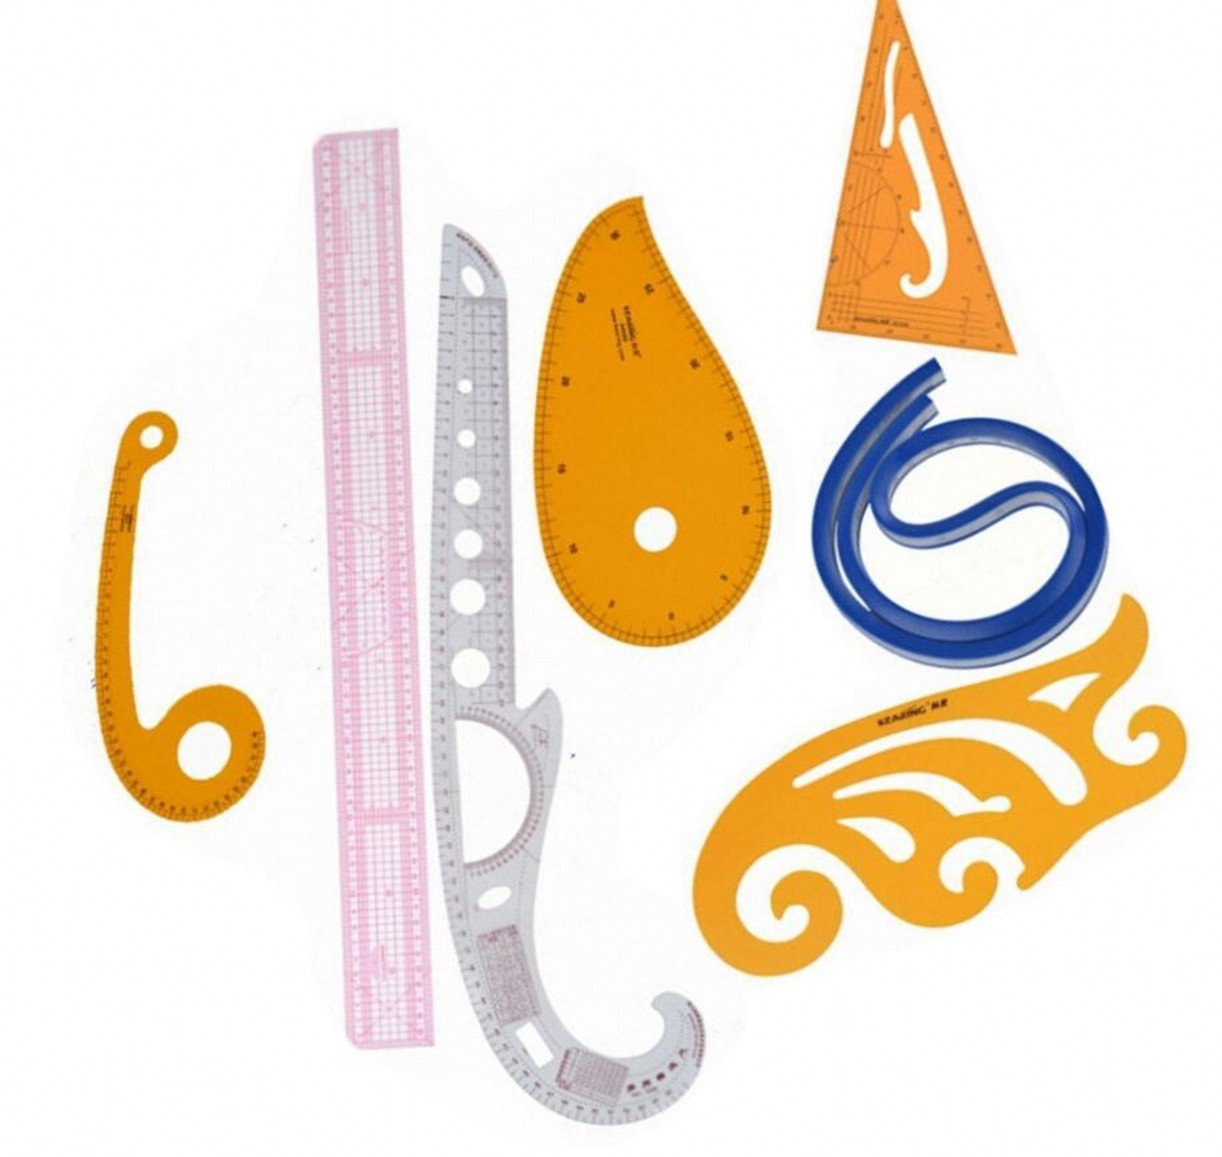 CHENGYIDA Practical 7 Styling Ruler French Curve Set French Curve, Multi-purpose Rolling Ruler Set by CHENGYIDA (Image #1)